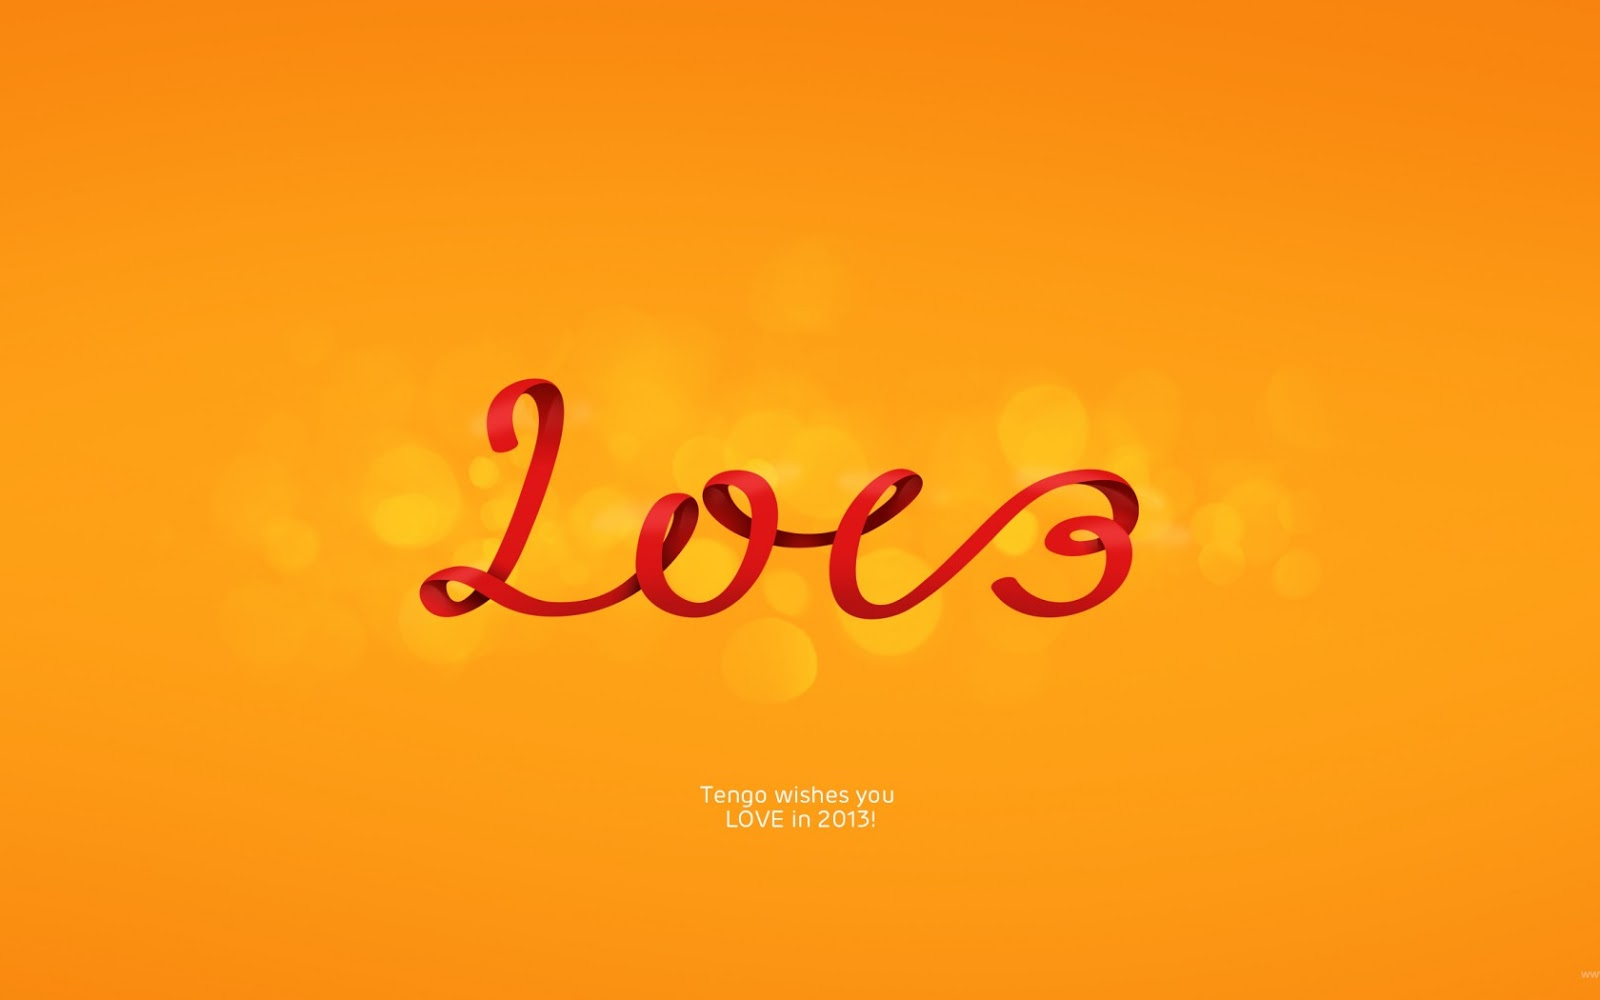 http://1.bp.blogspot.com/-CMvRjonfEww/UOCnQd6gc9I/AAAAAAAAJQ0/KK-KvDn23XA/s1600/Love-Text-Typography-HD-Wallpaper.jpg